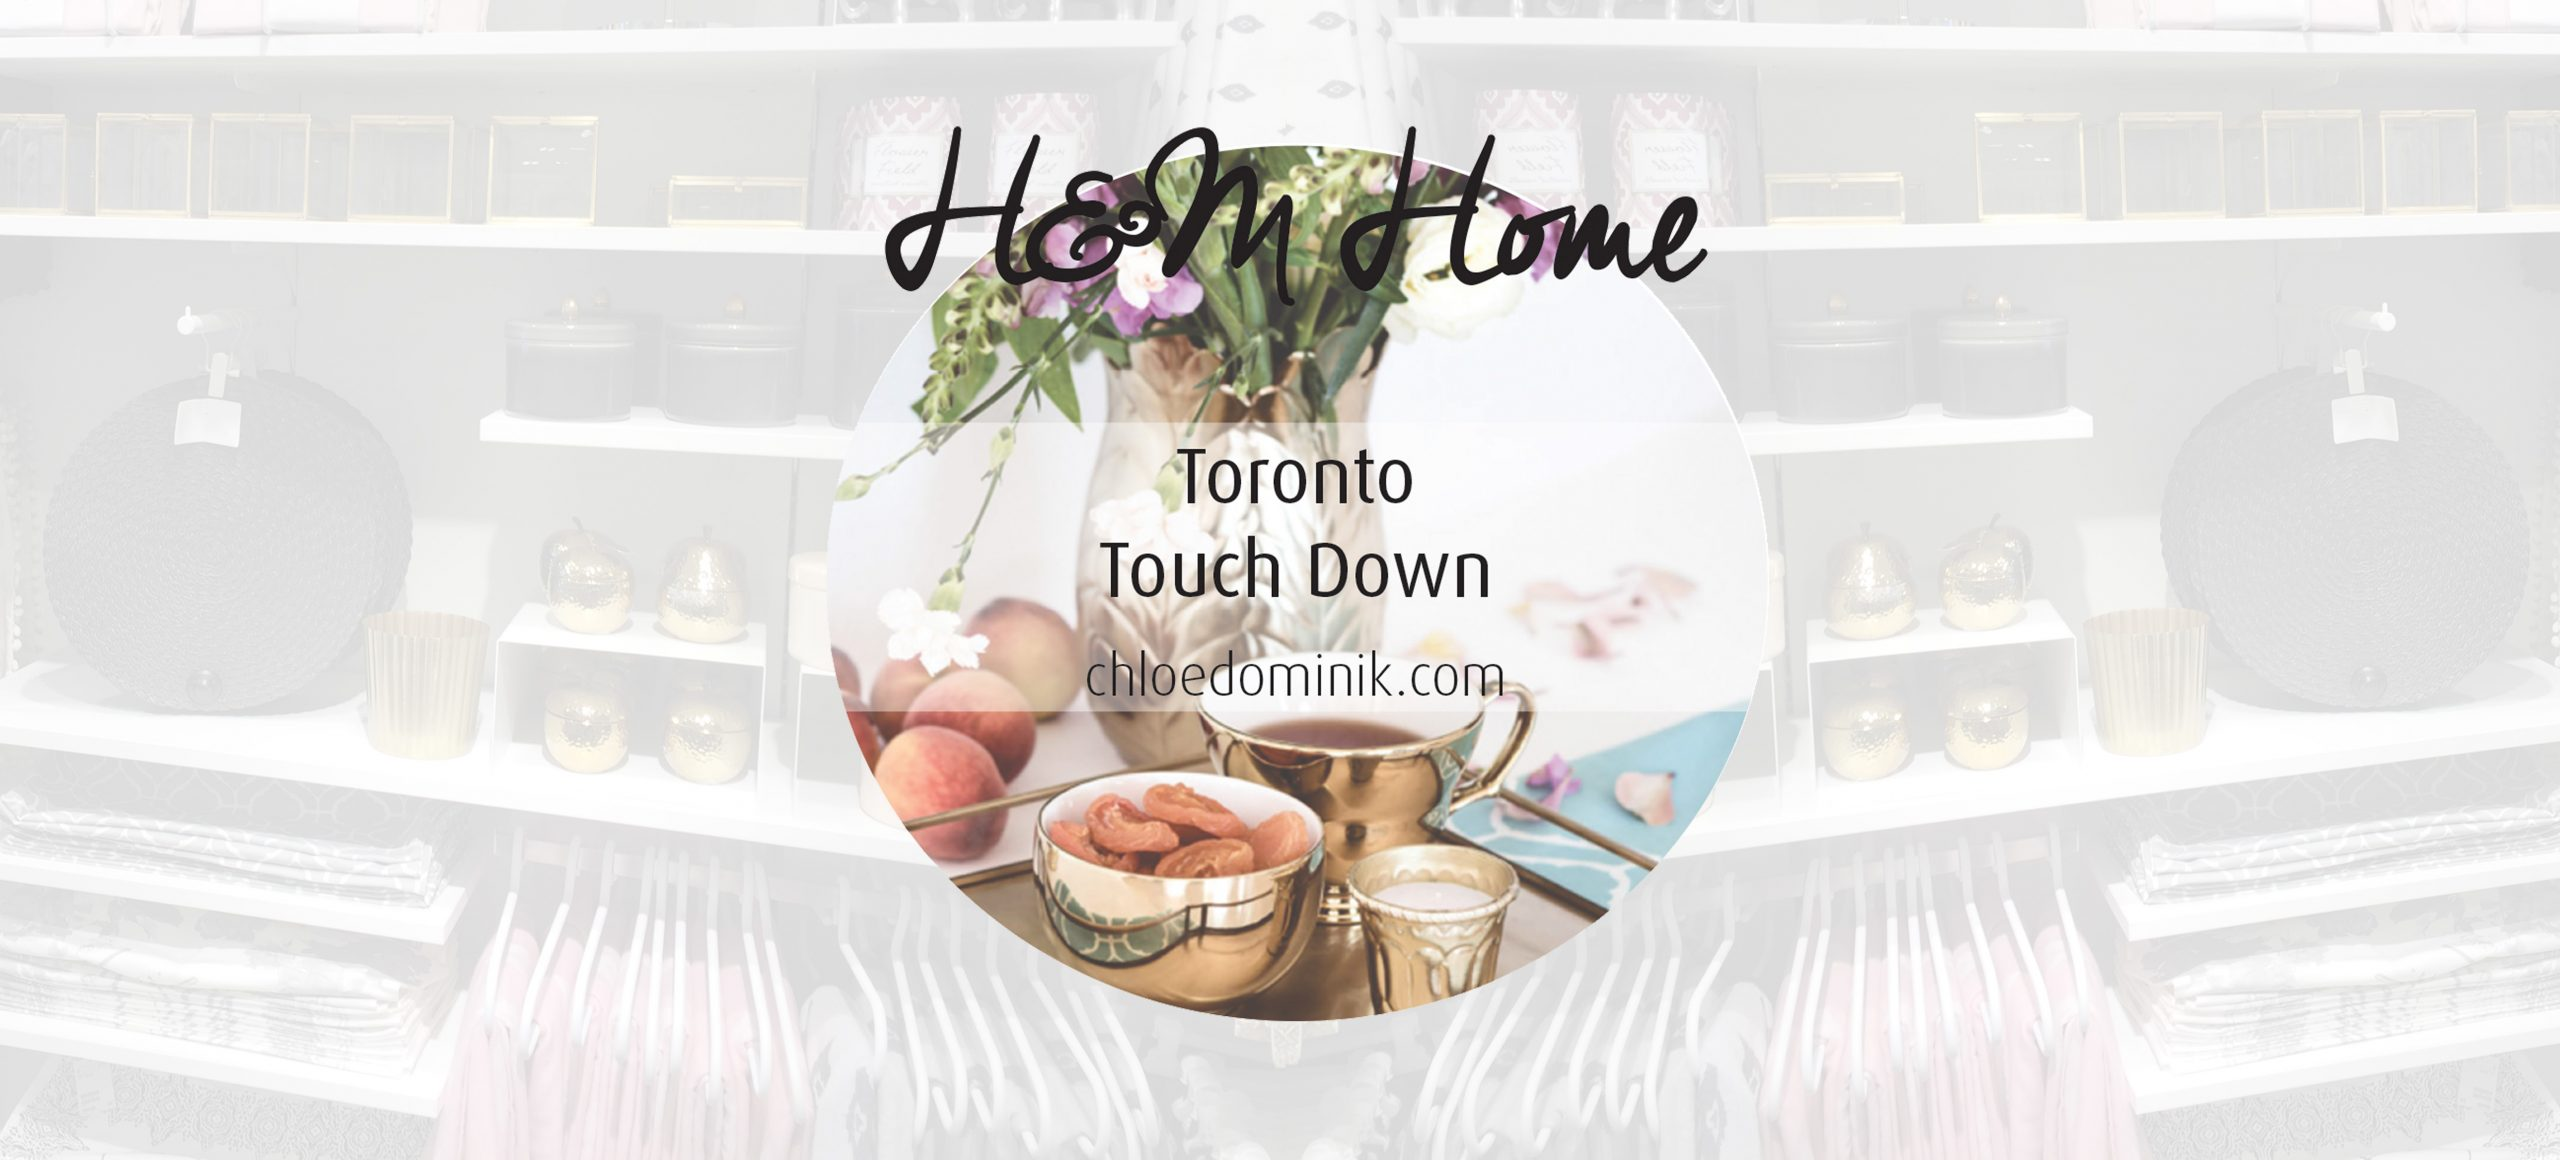 H&M Home: Toronto Touch Down